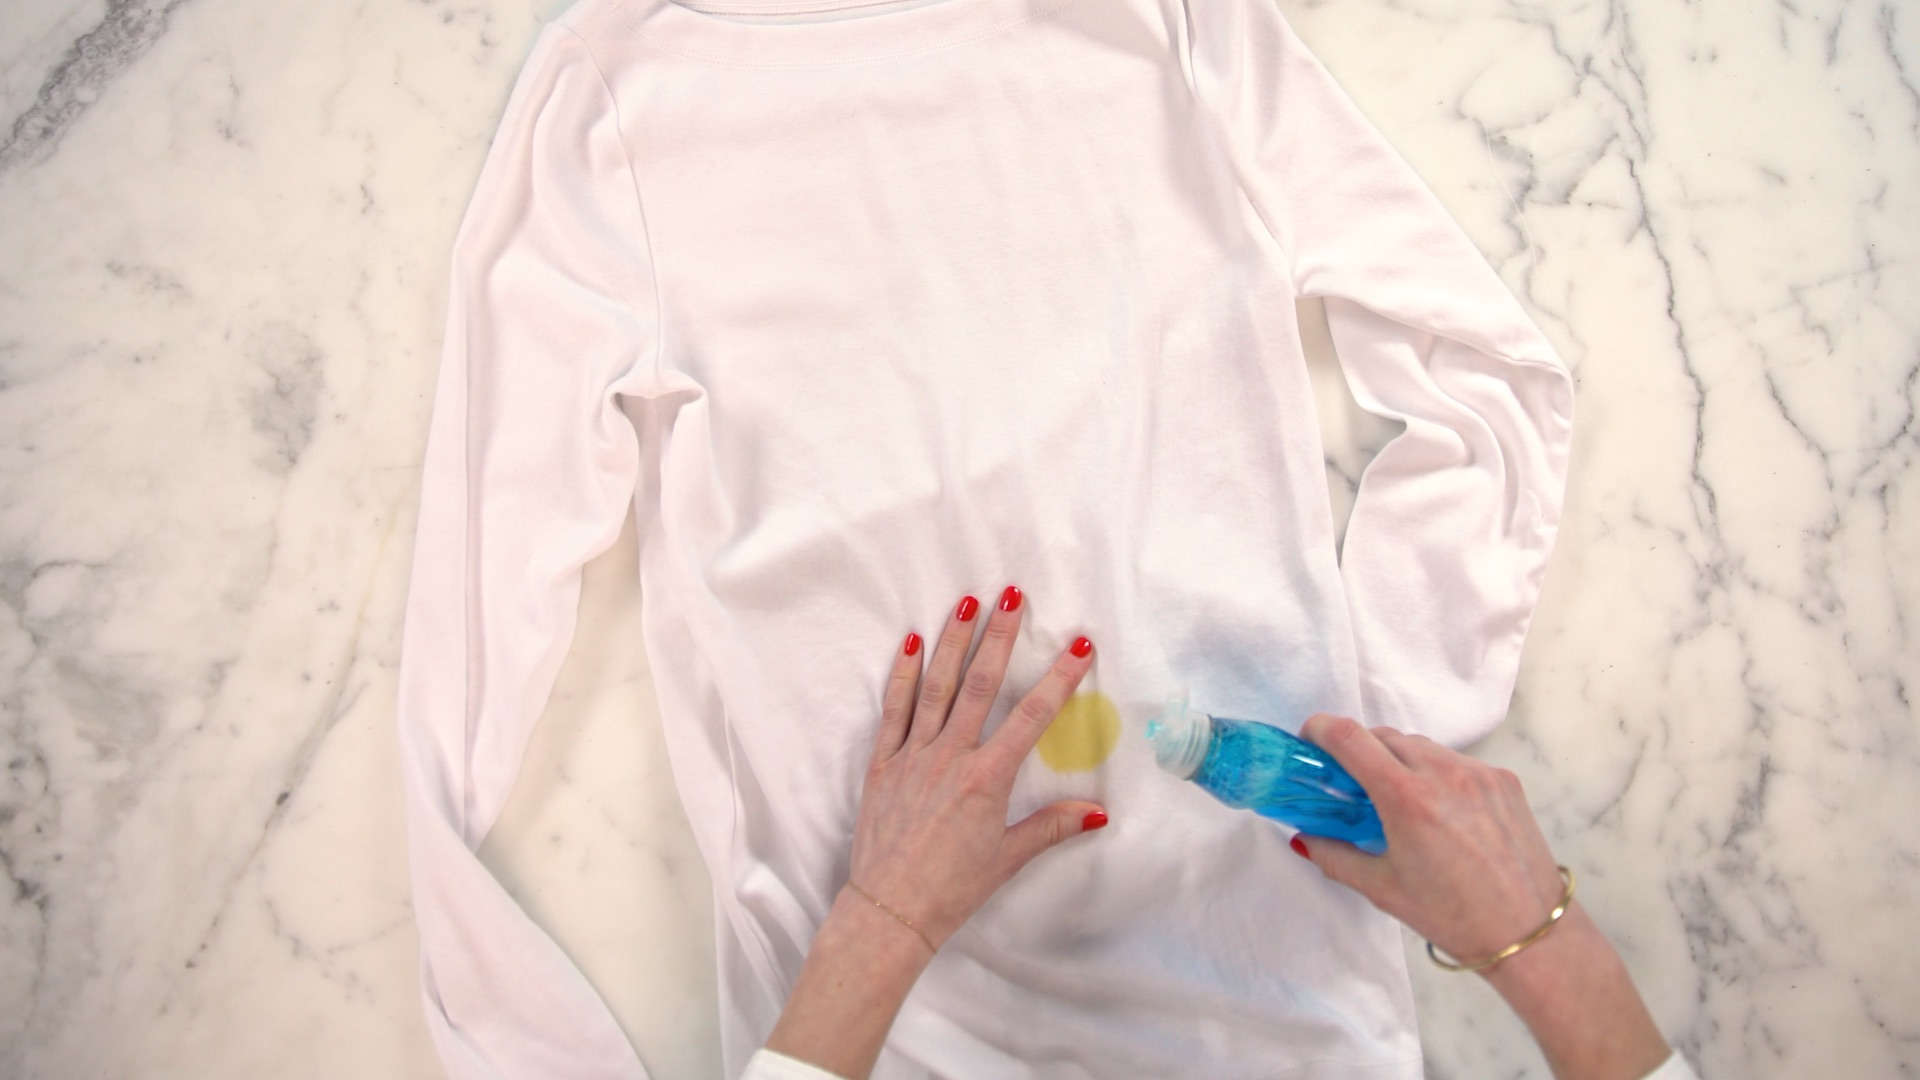 How to Remove Oil Stains From Clothes, dish soap